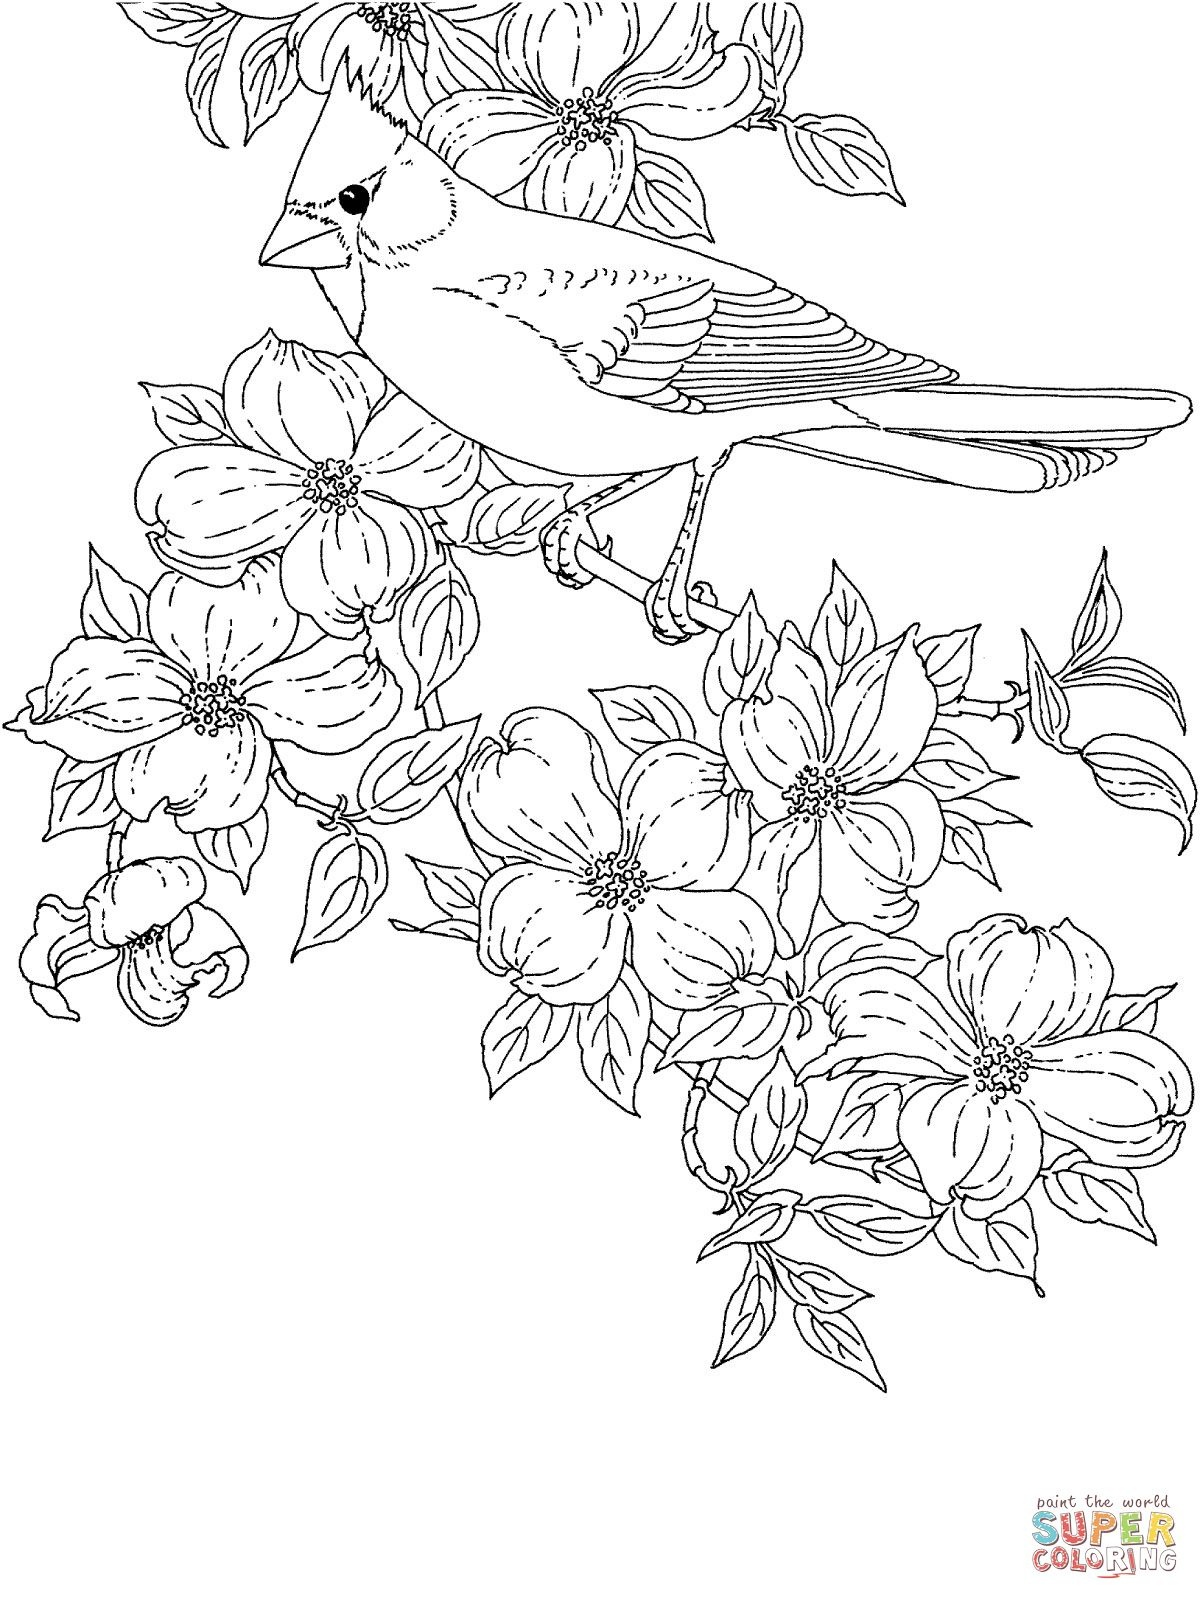 Cardinal Bird And Flowering Virginia State Flower | Super Coloring - Free Printable Pictures Of Cardinals